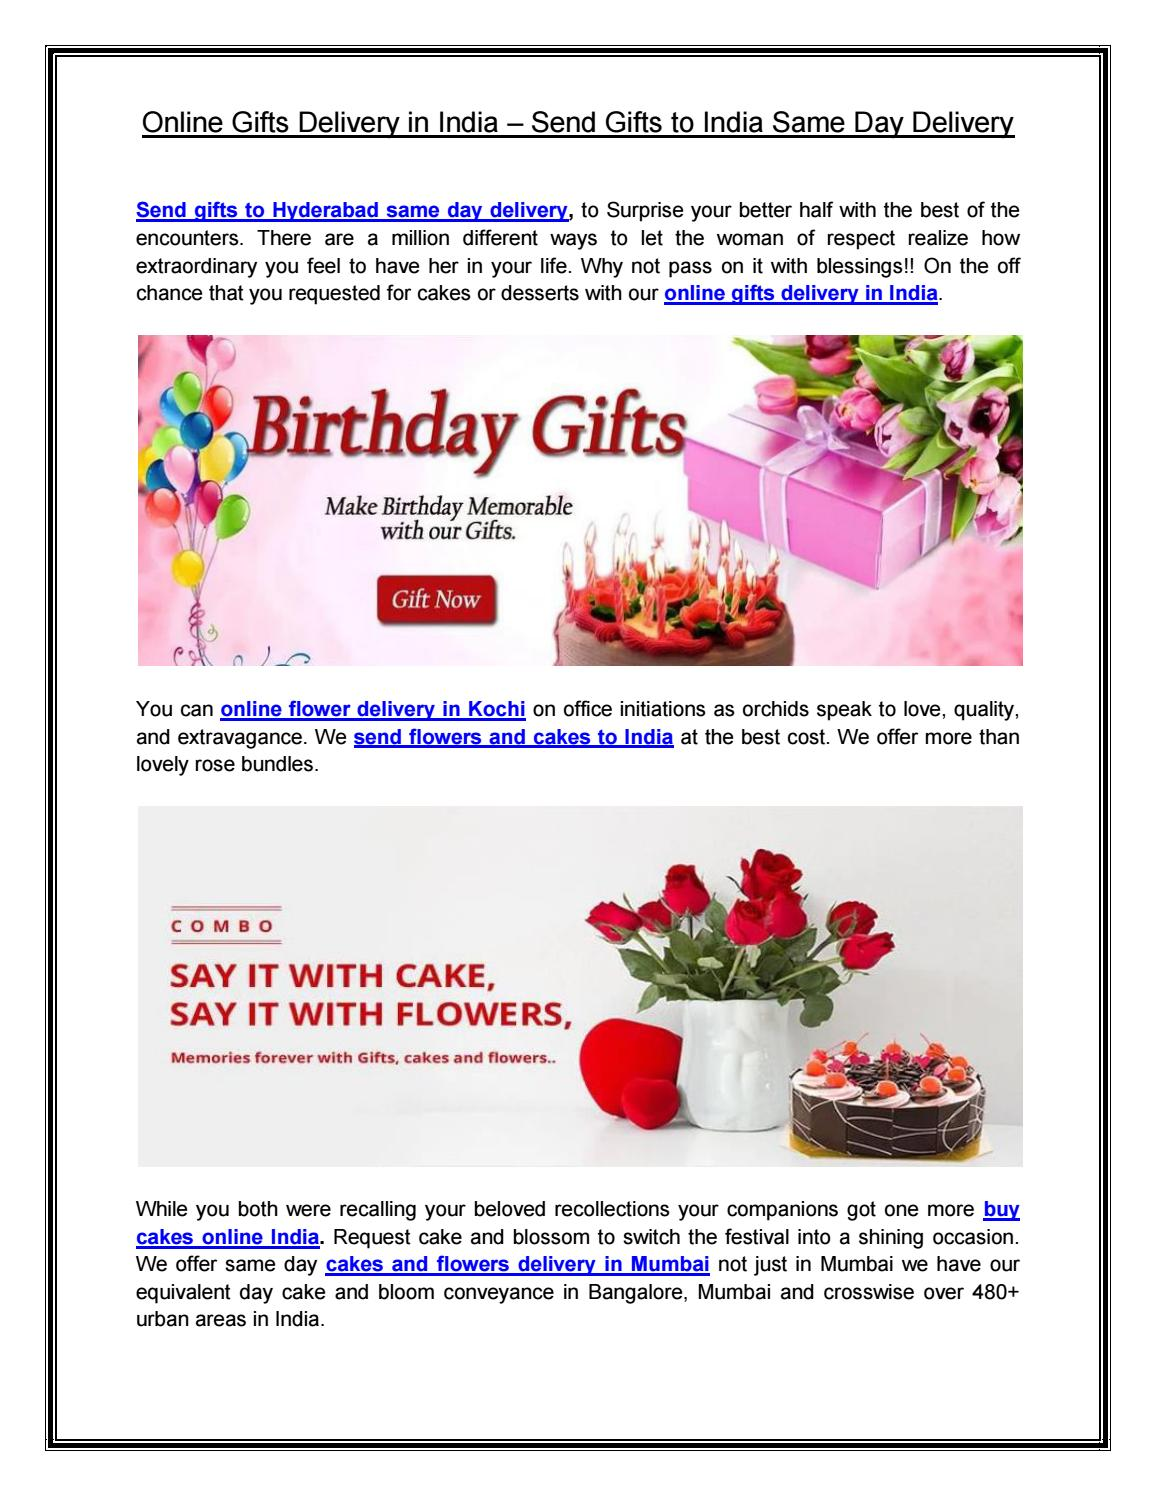 Online Gifts Delivery In India Send Gifts To India Same